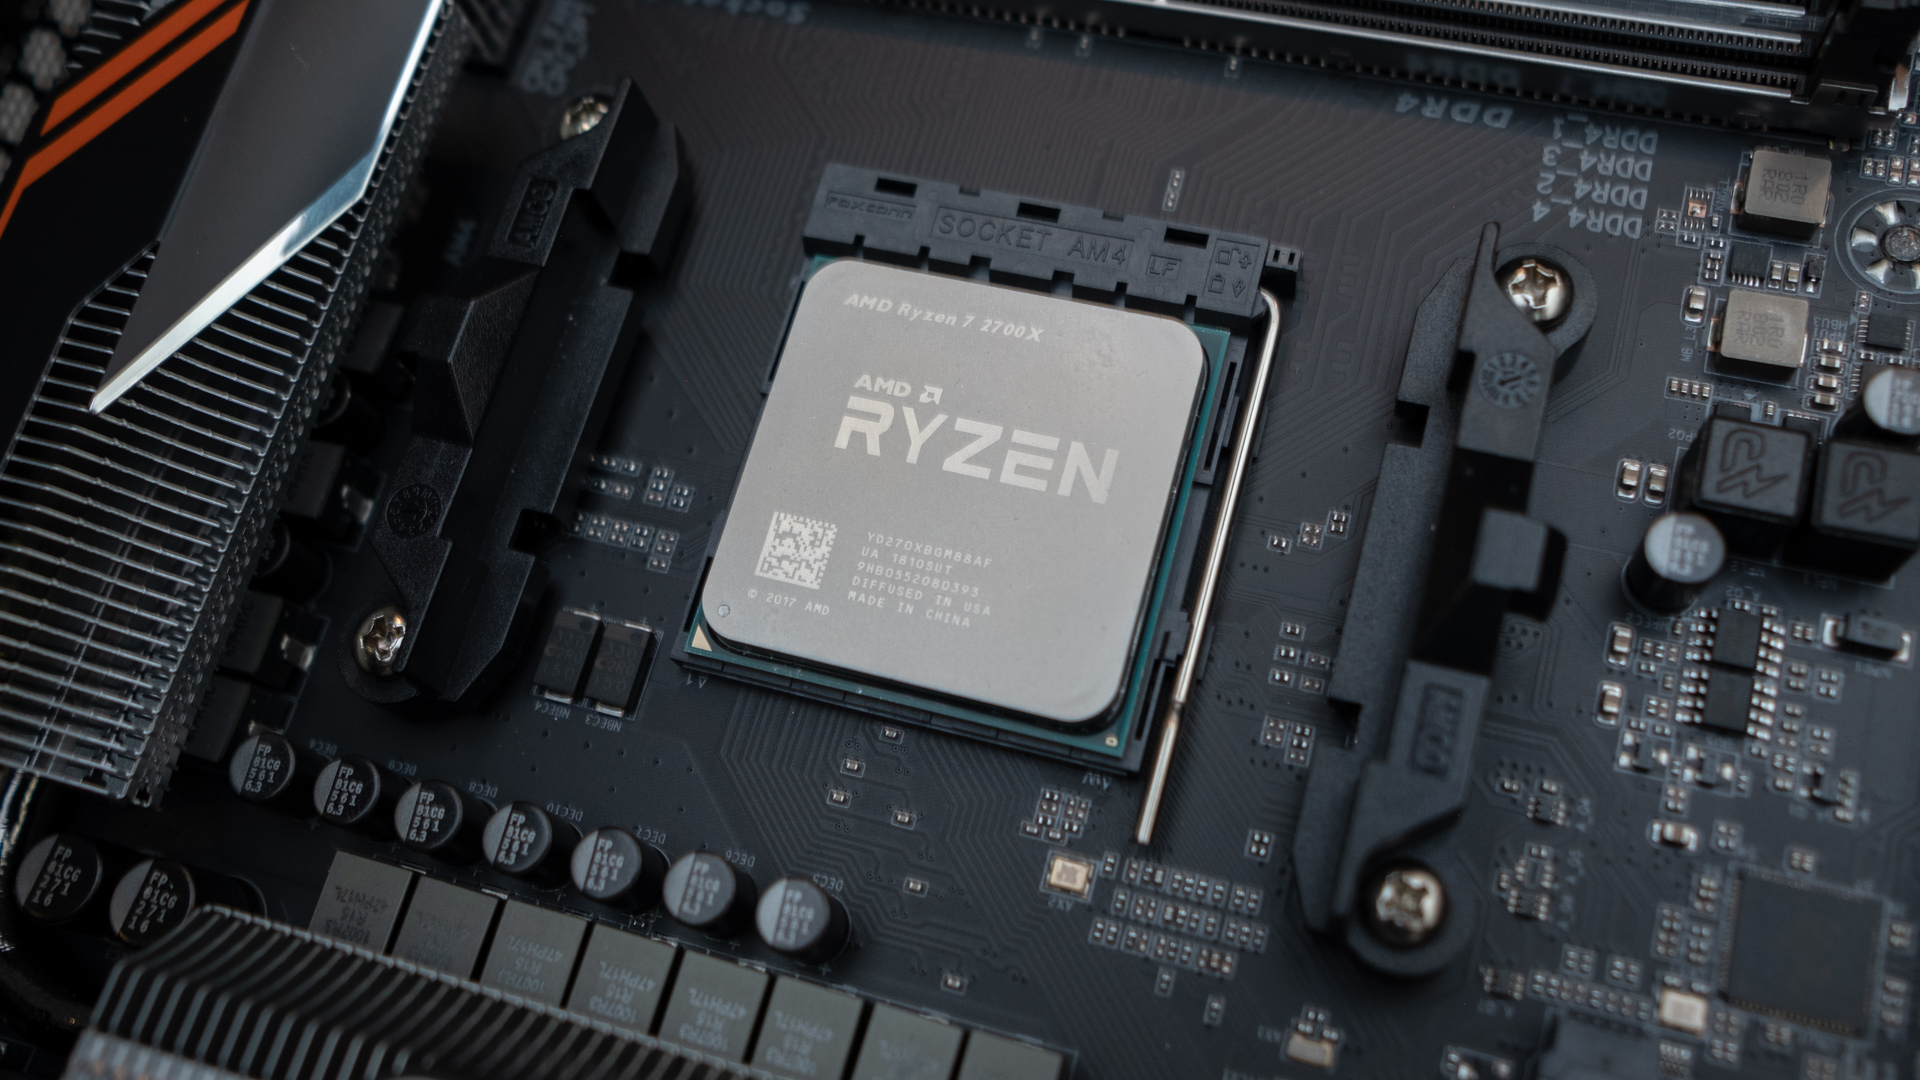 AMD Ryzen 7 2700X price drop steals thunder from Intel's Core i9-9900K launch